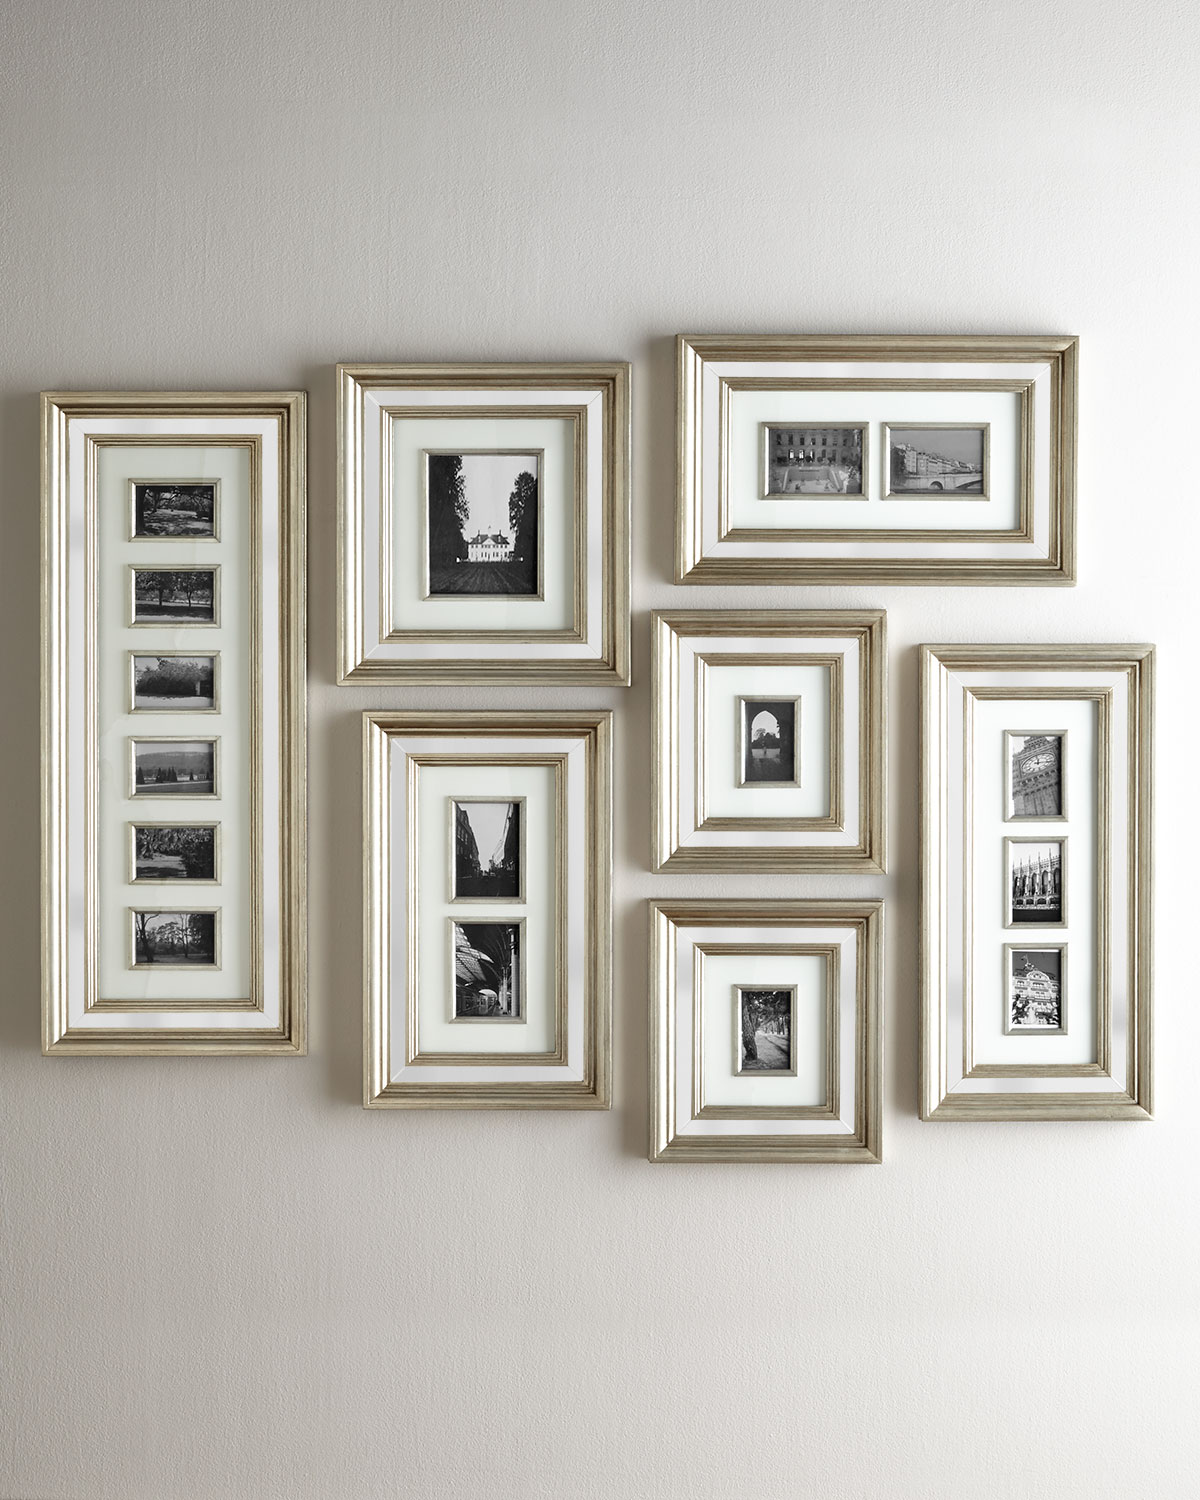 Mirrored Picture Frames Mirrored Collage Picture Frame Gallery Neiman Marcus